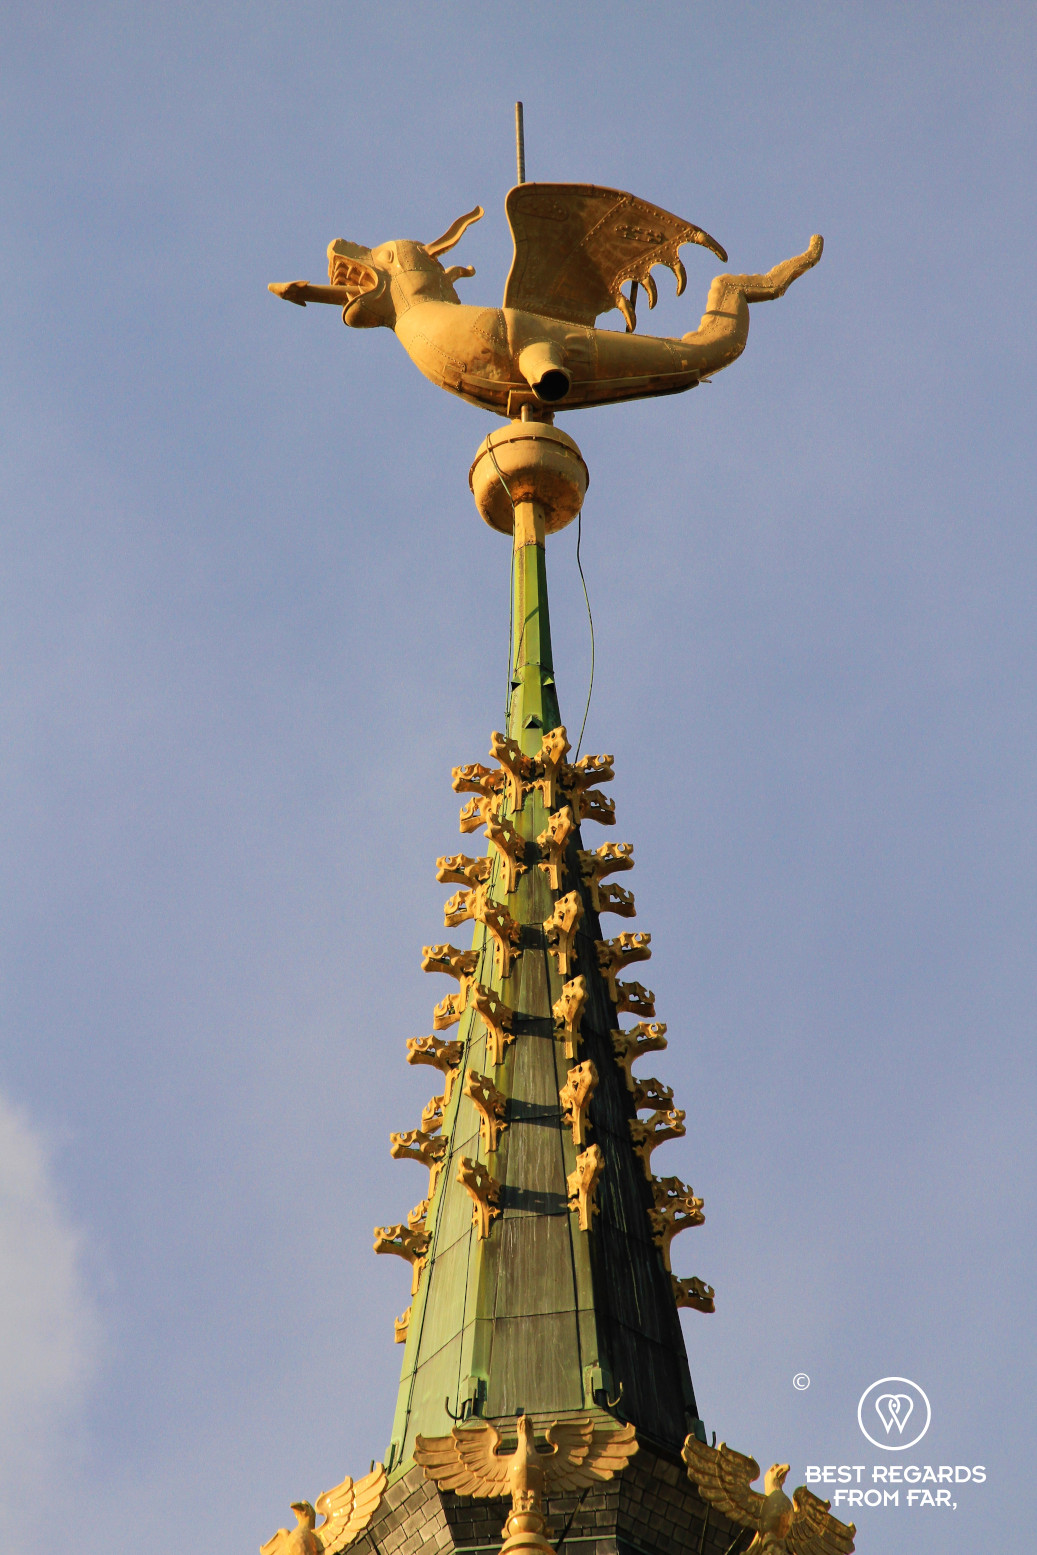 The gilded dragon on the Belfry of Ghent, Belgium